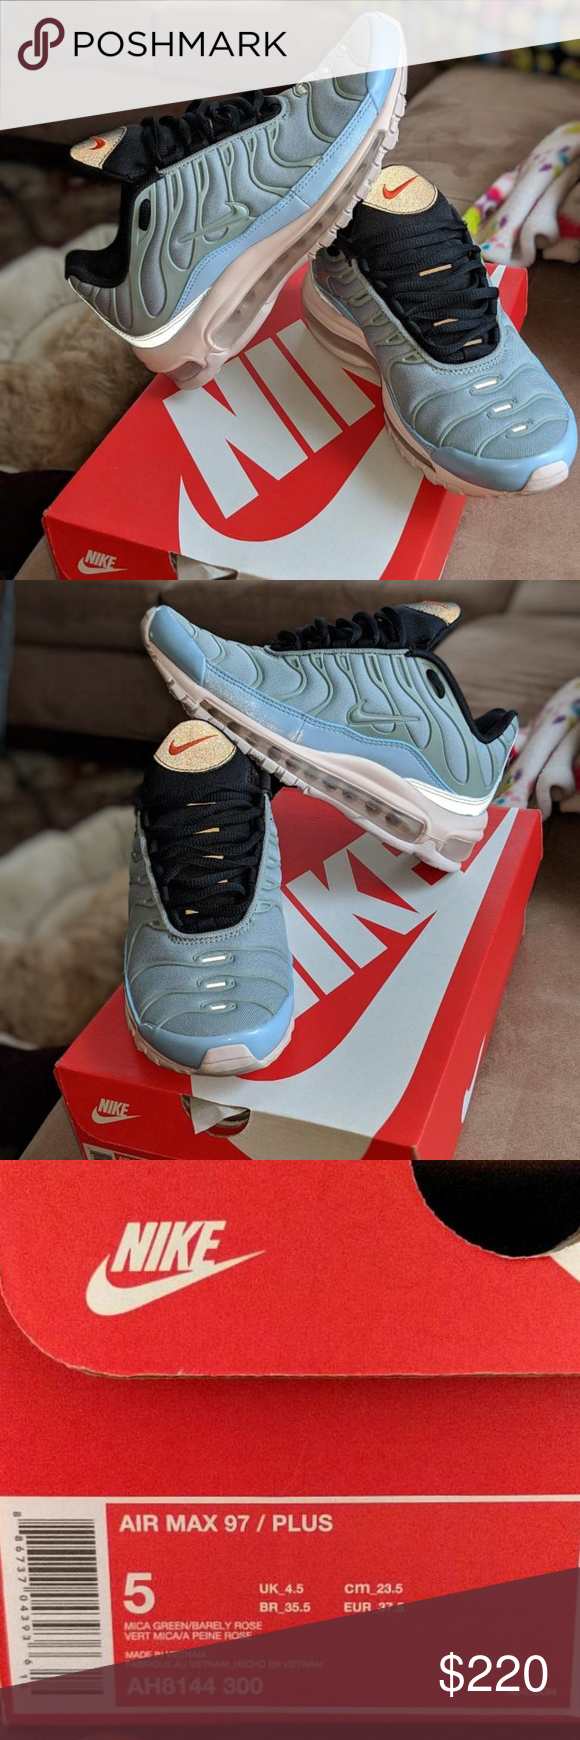 separation shoes 3f96f 717b4 Nike Air Max 97 / Plus Layer Cake Never Used. NWT. Nike ...